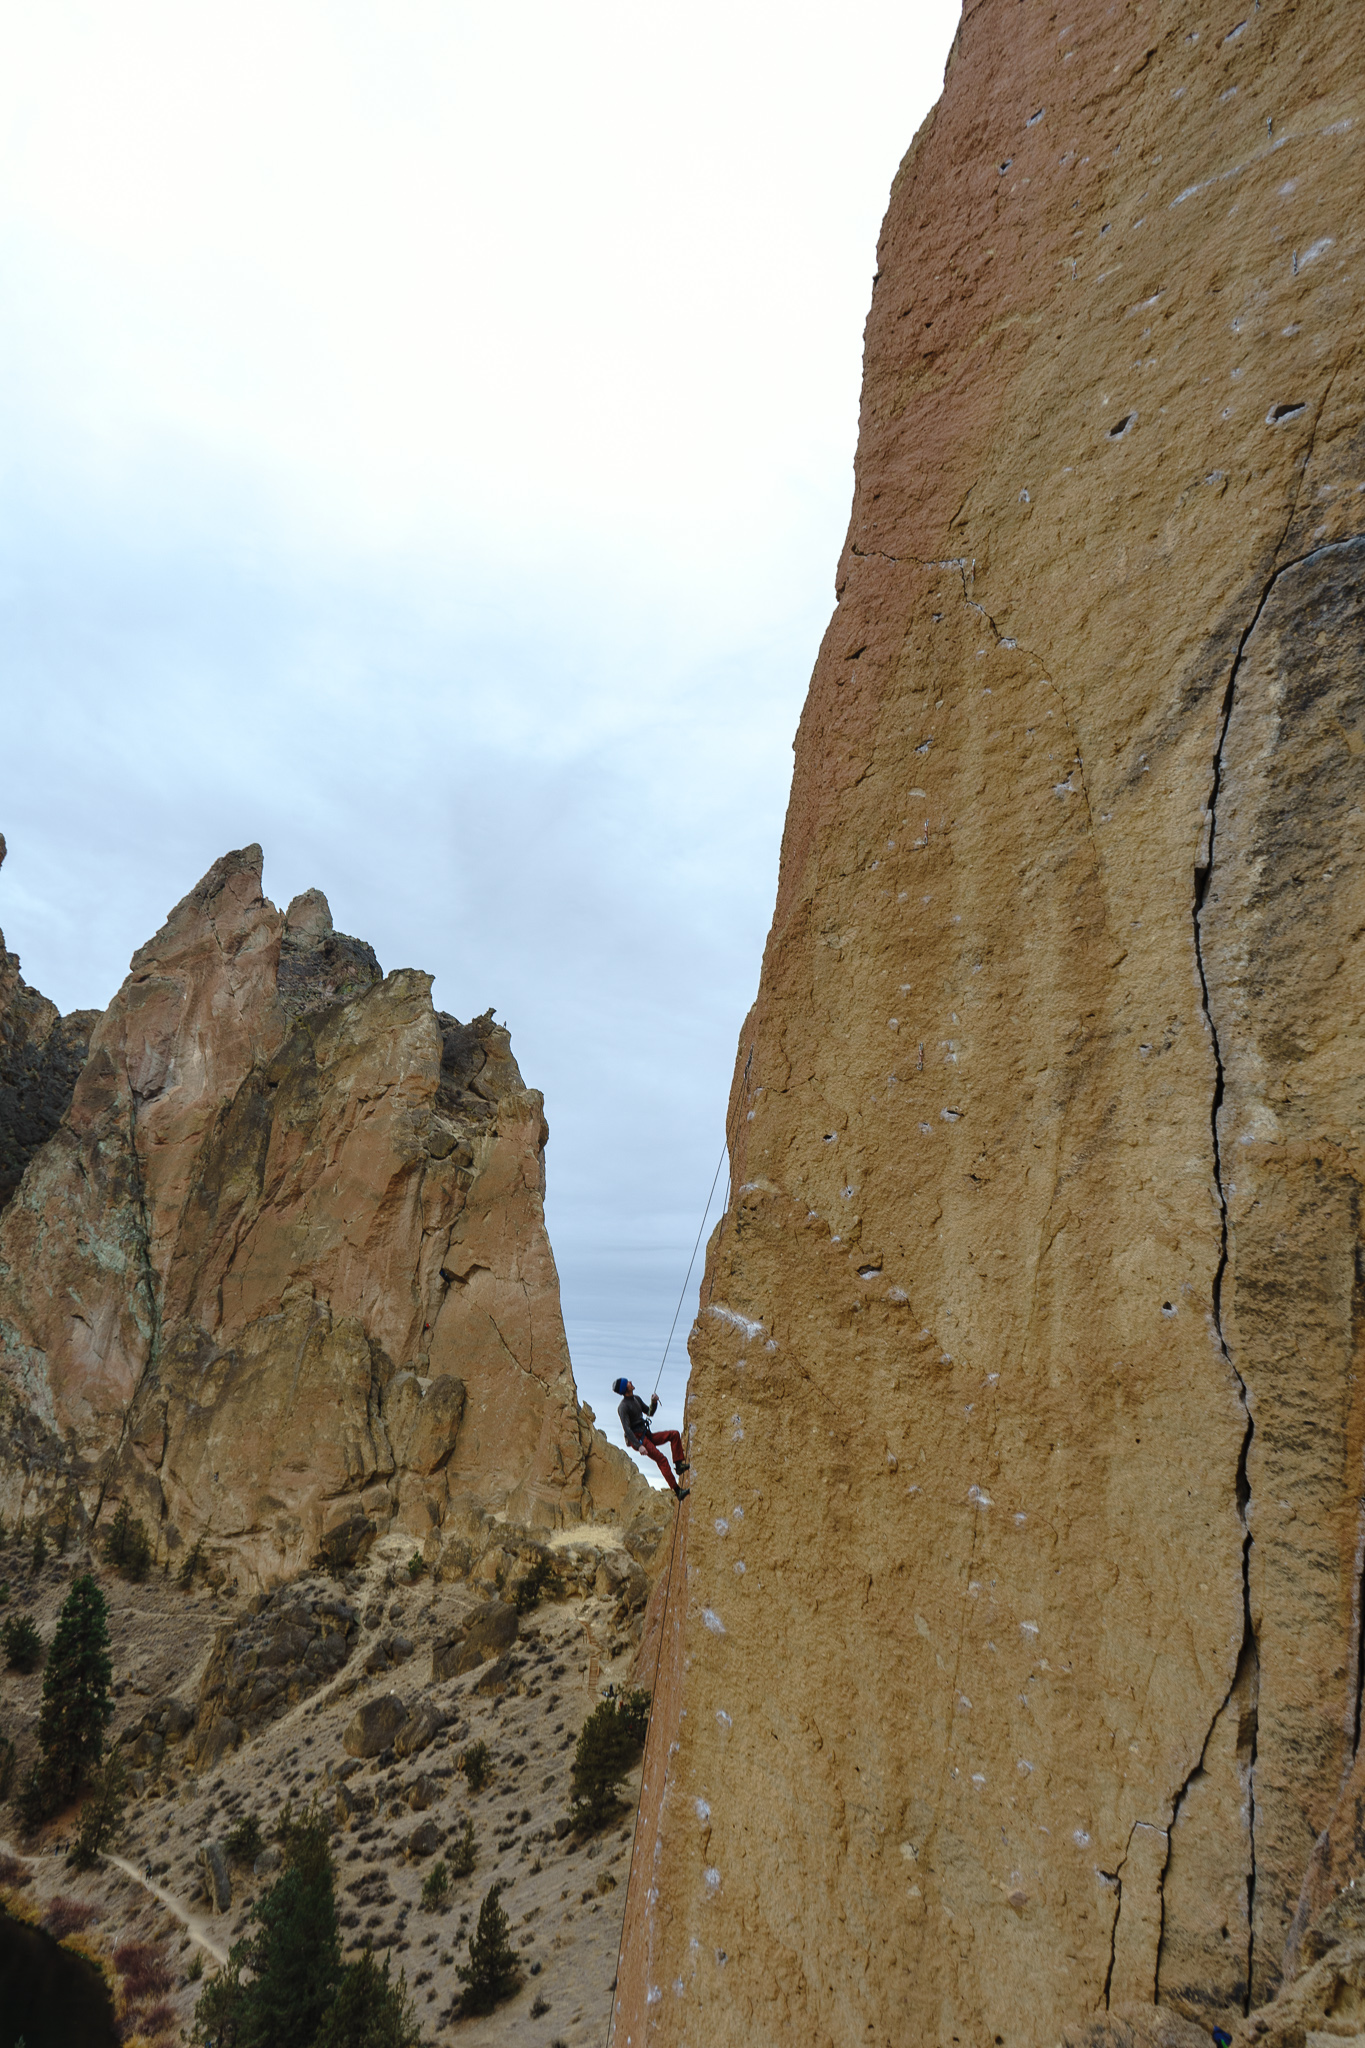 Climber staring at his route